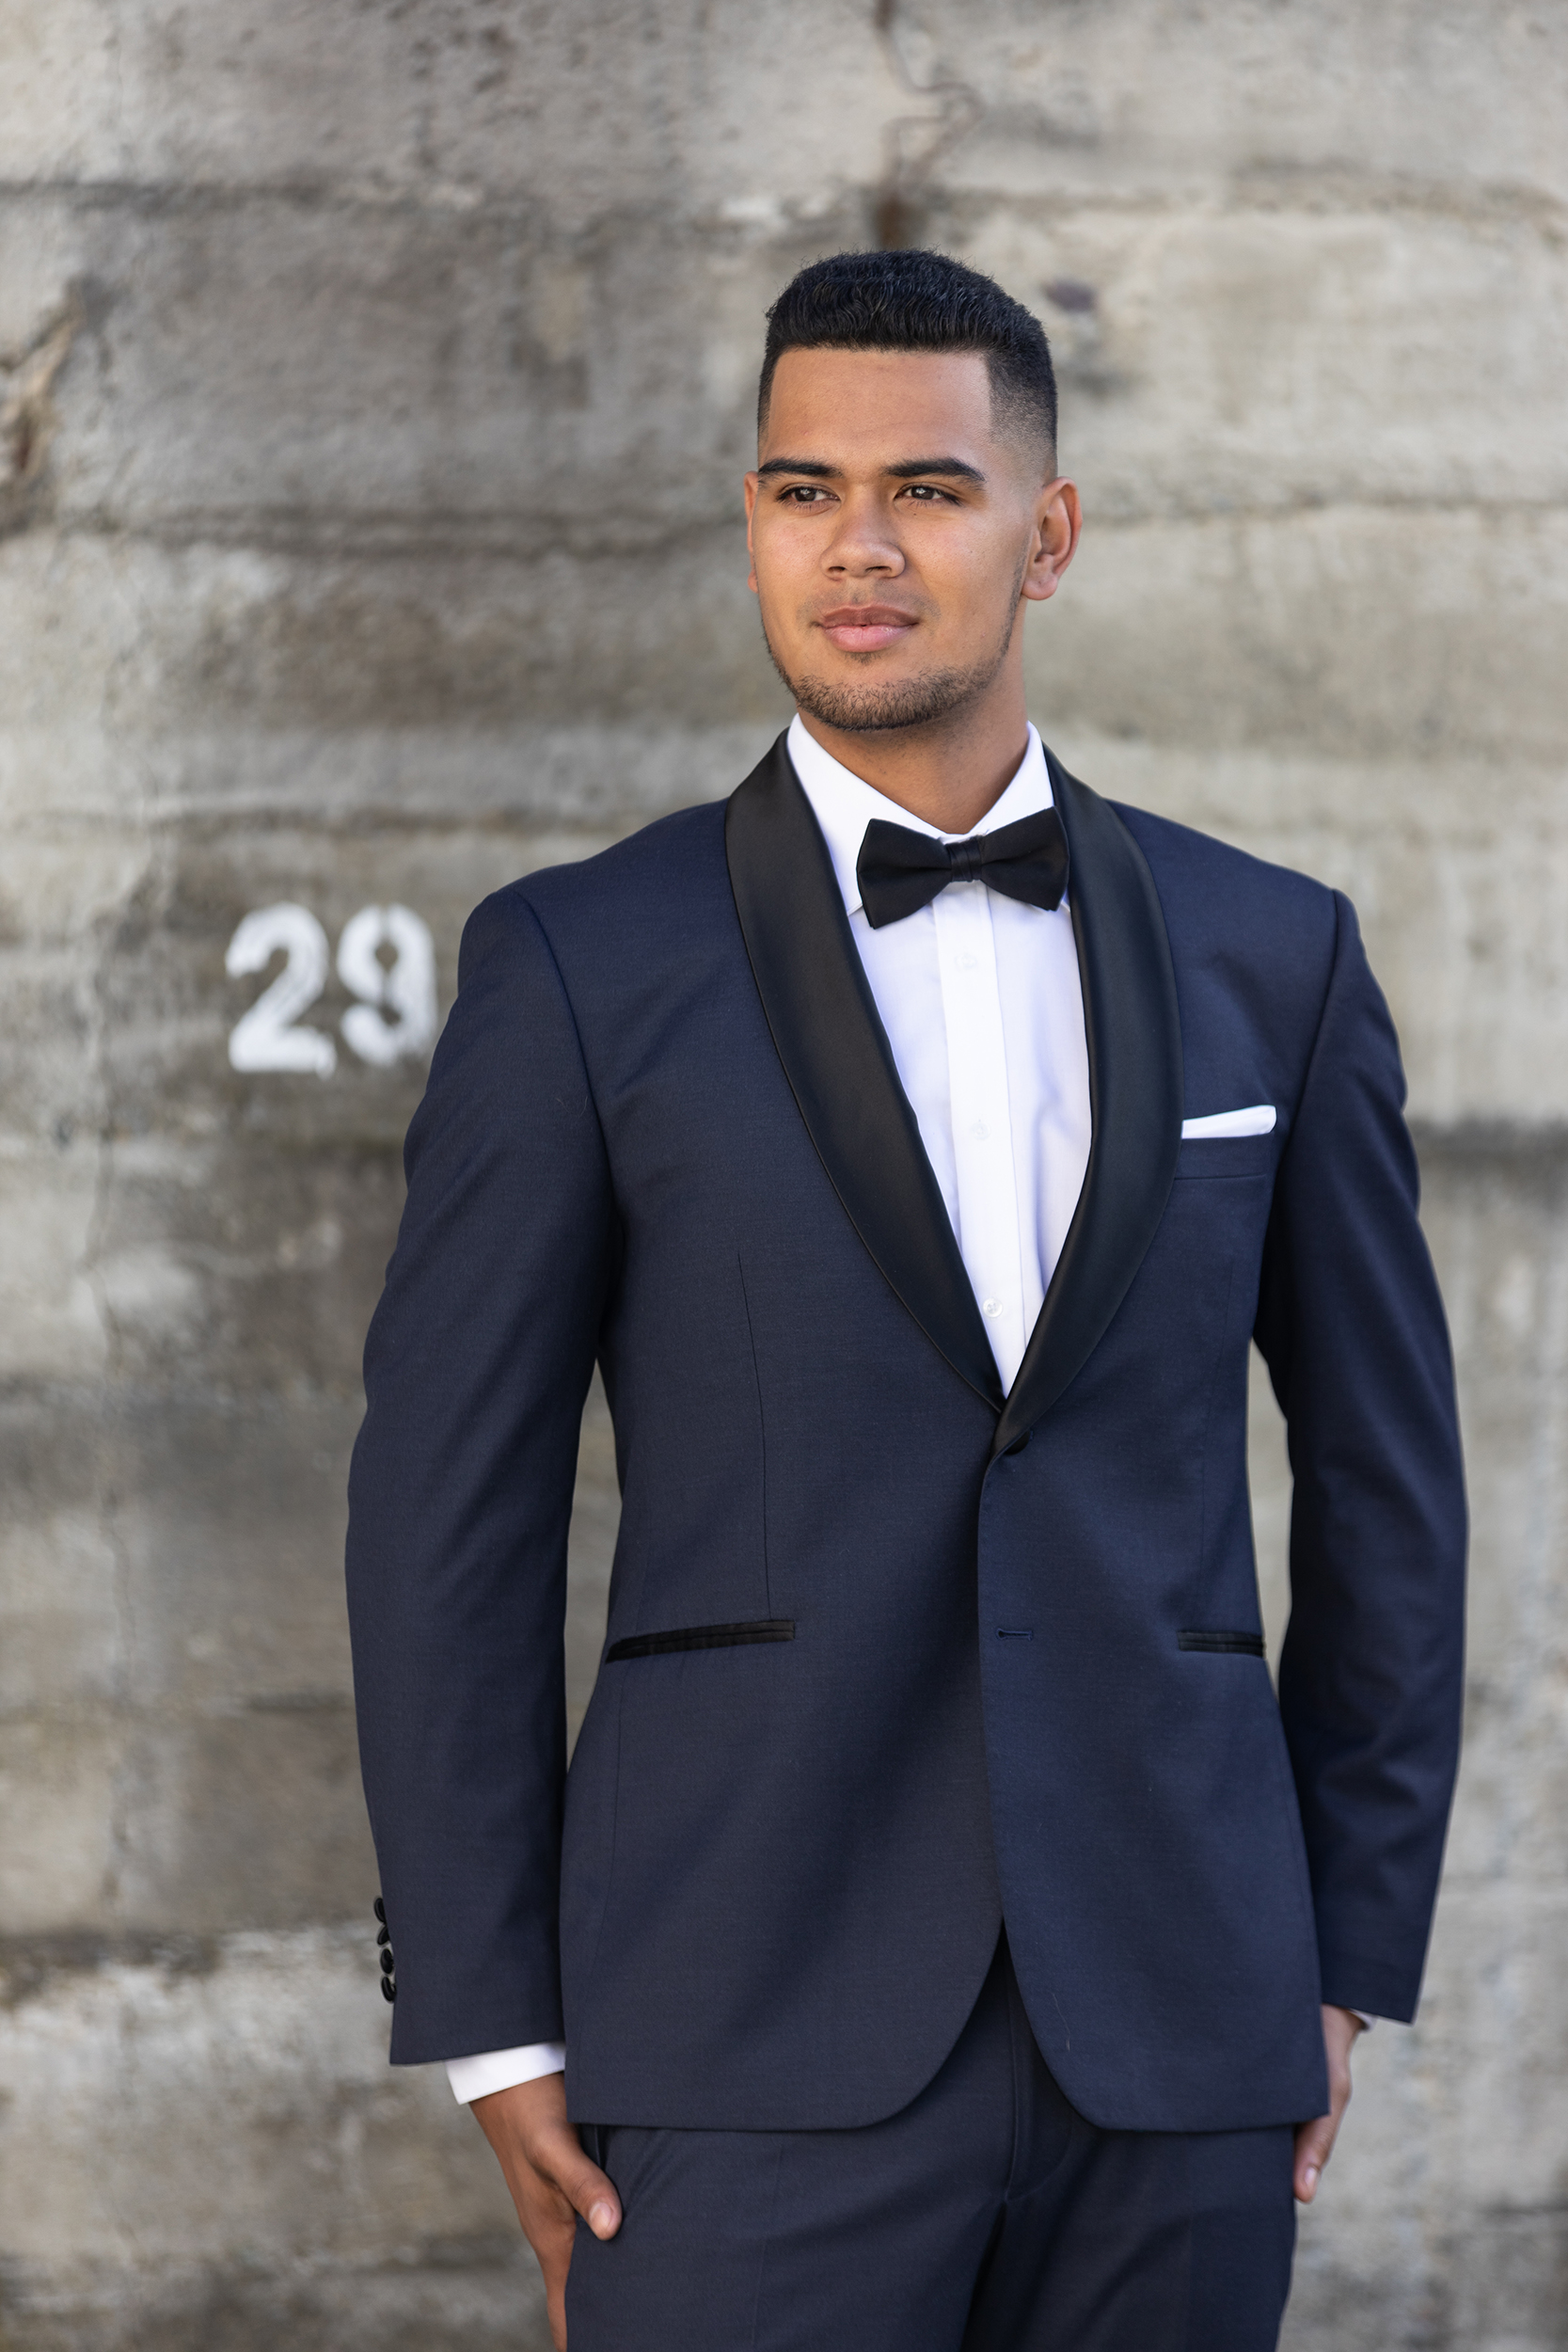 Joe—Navy - Slim Fit- Navy with black collar- Shawl collar with satin finish- 2 button suit jacket- Tapered suit trouserHire price $120 NZDReg: 92—104